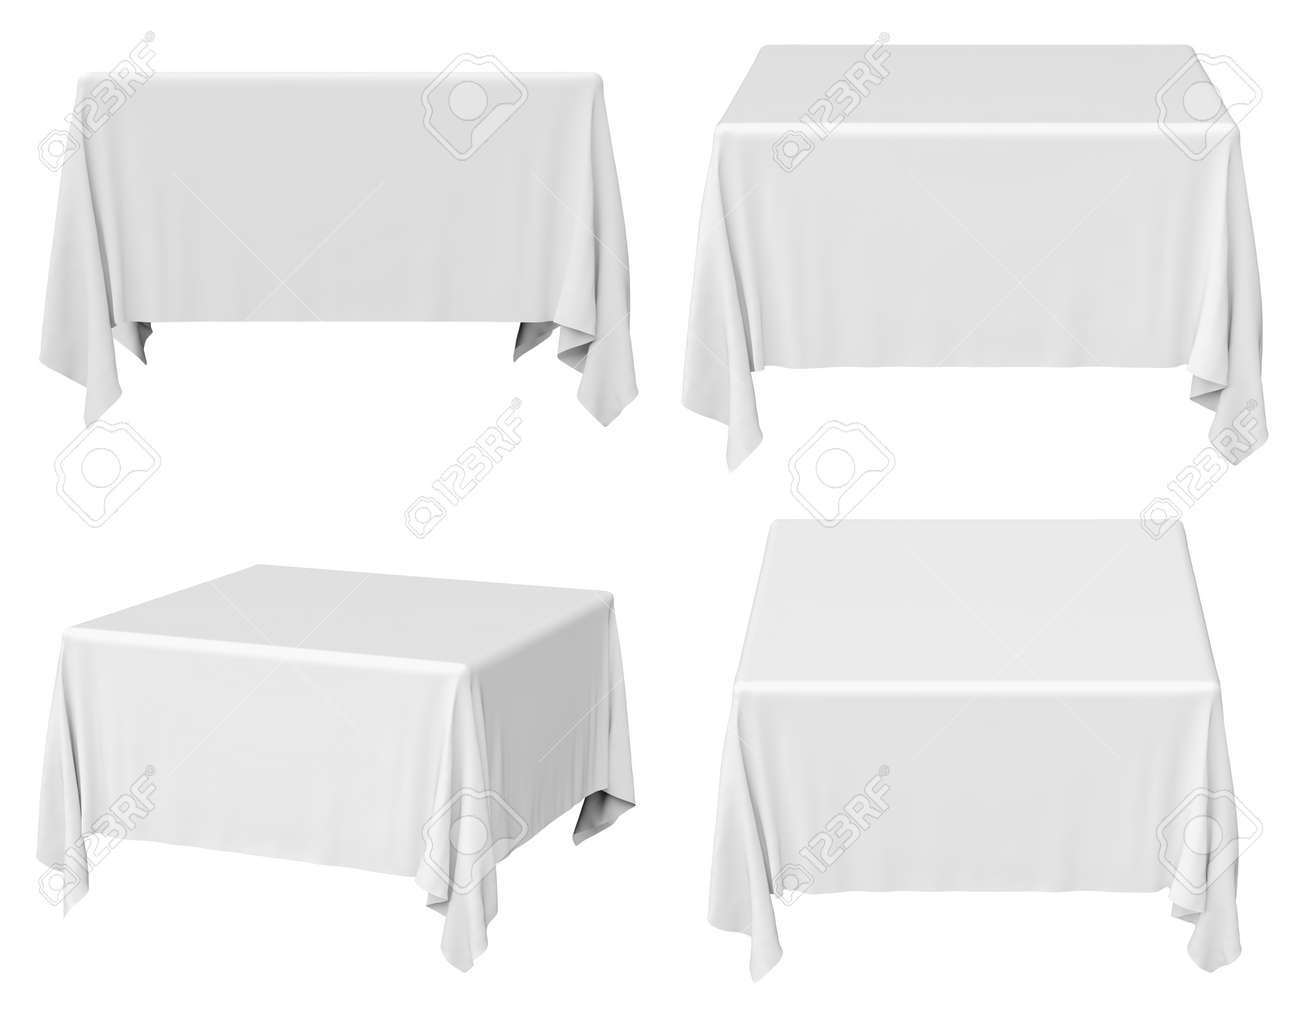 Ordinaire Illustration   White Square Tablecloth Set Isolated On White, 3d  Illustration